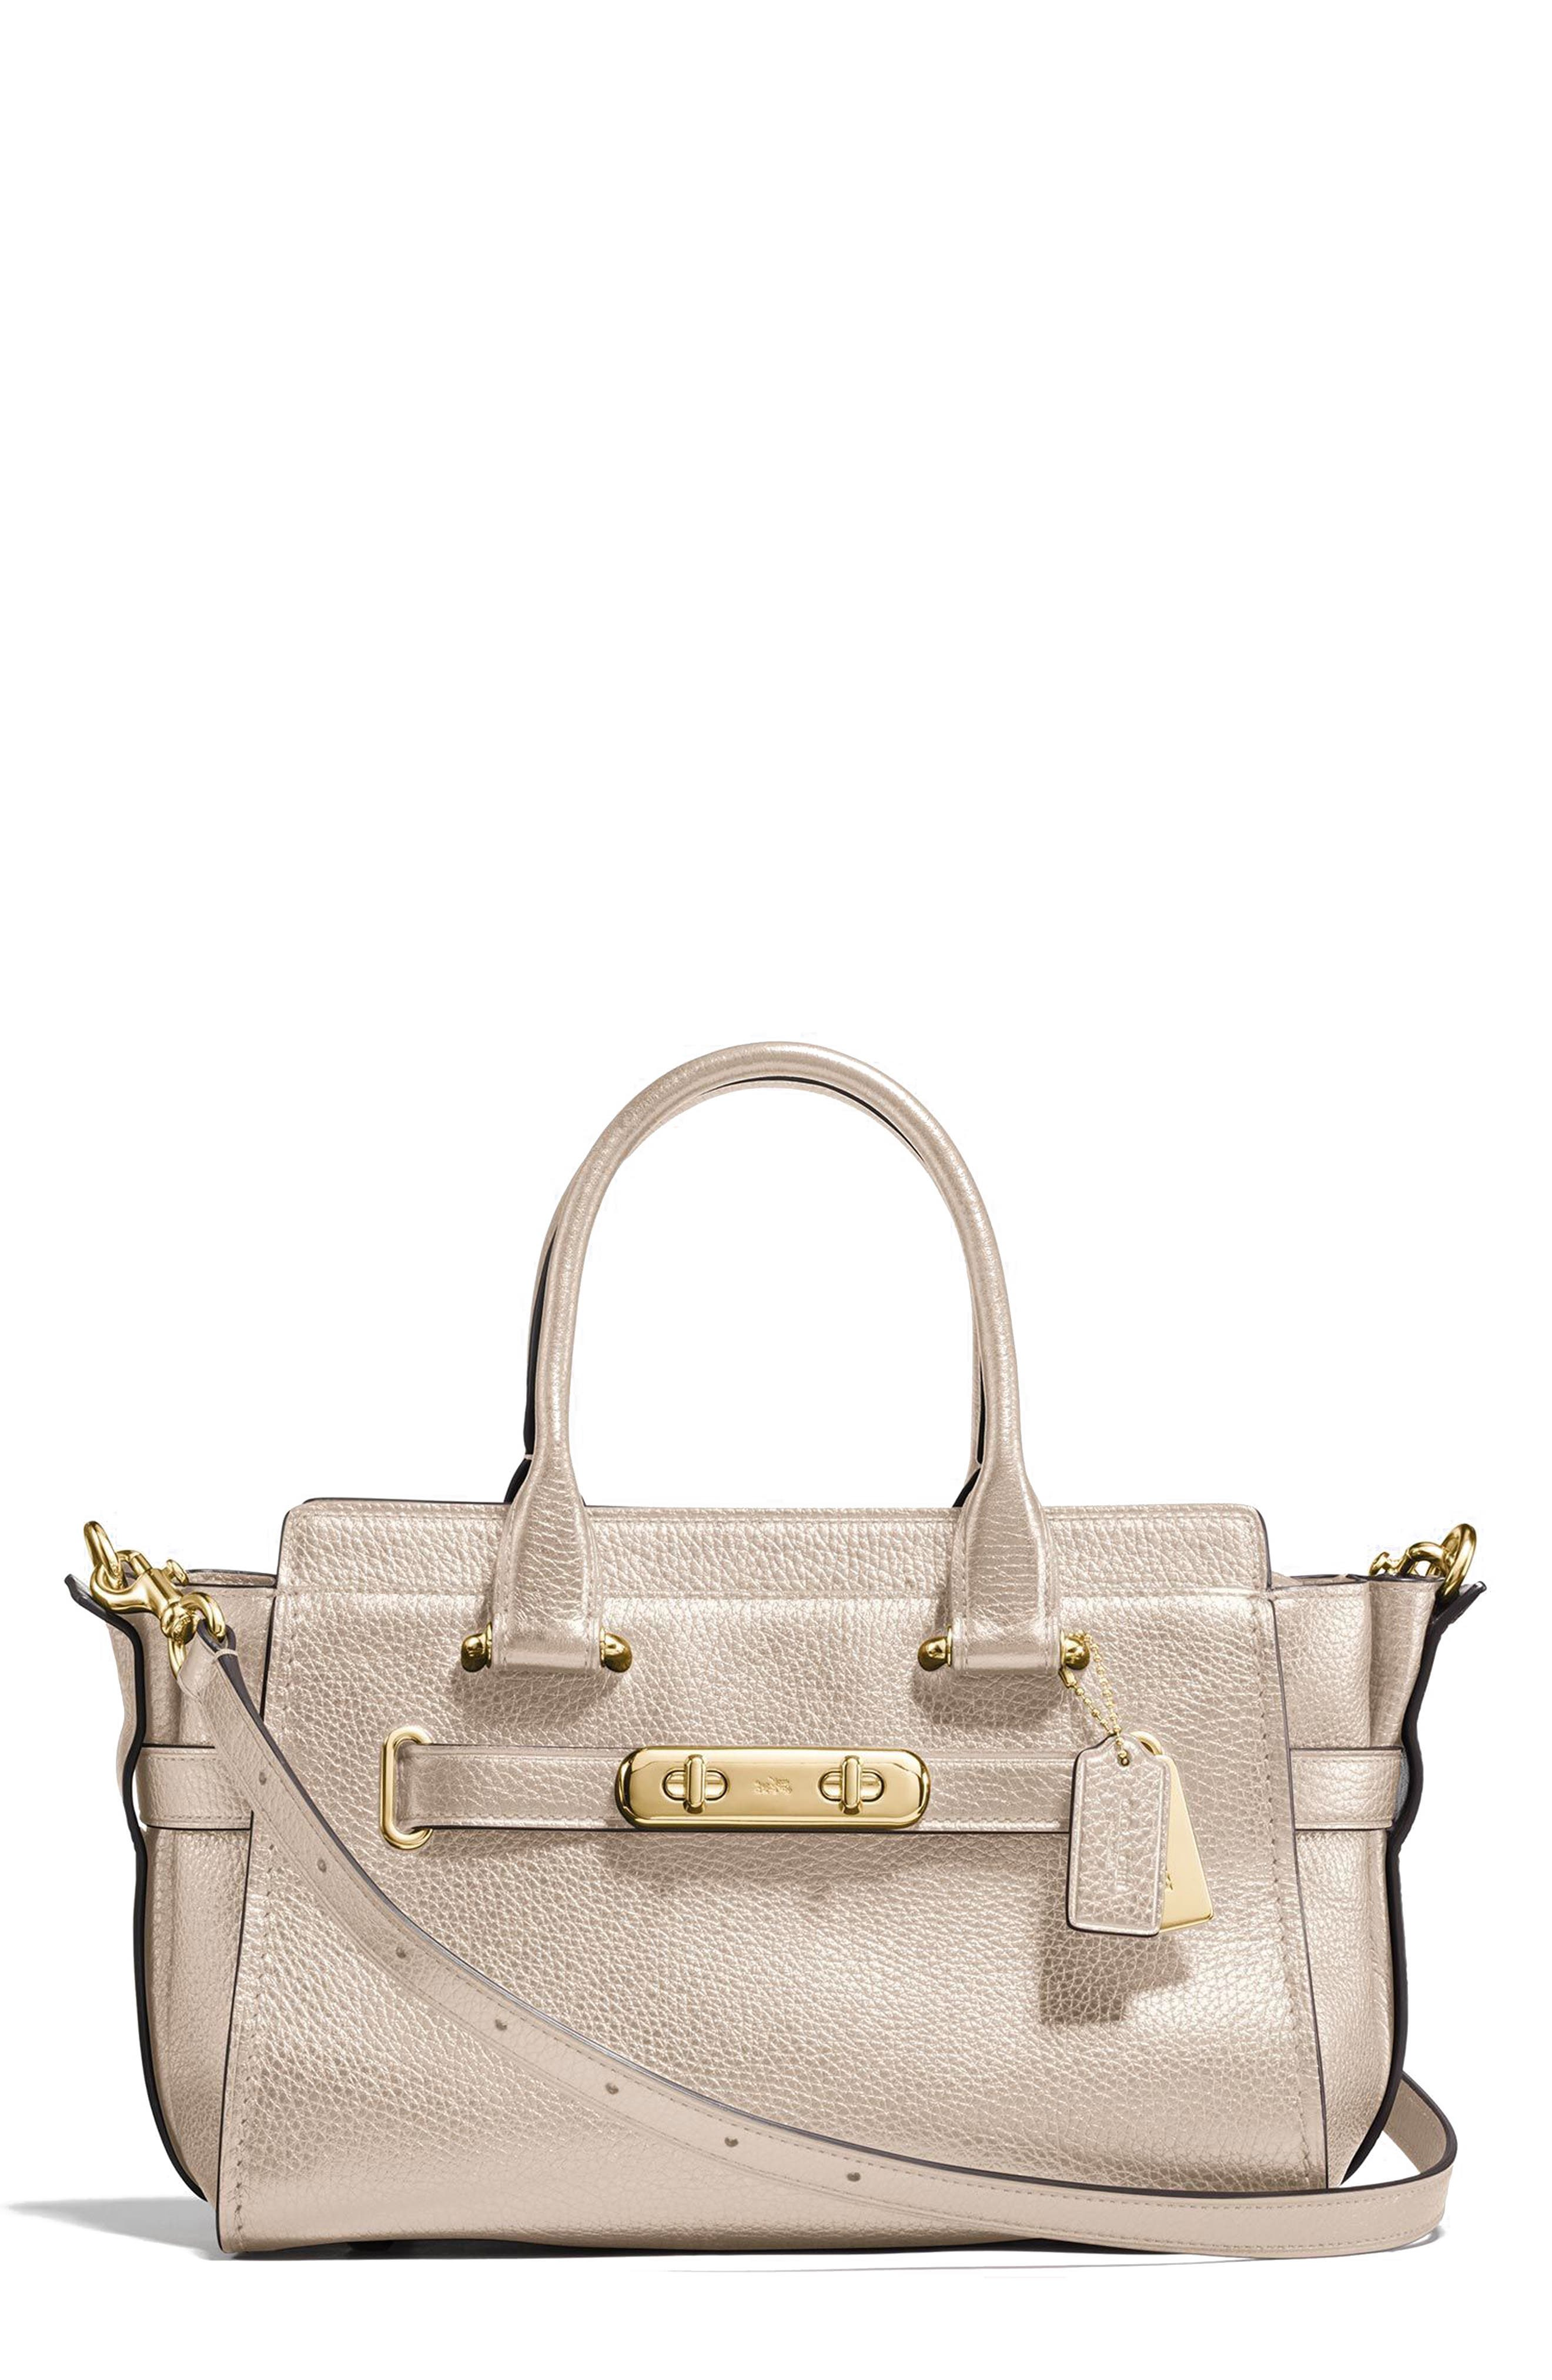 Swagger 27 Metallic Pebbled Leather Satchel,                             Main thumbnail 2, color,